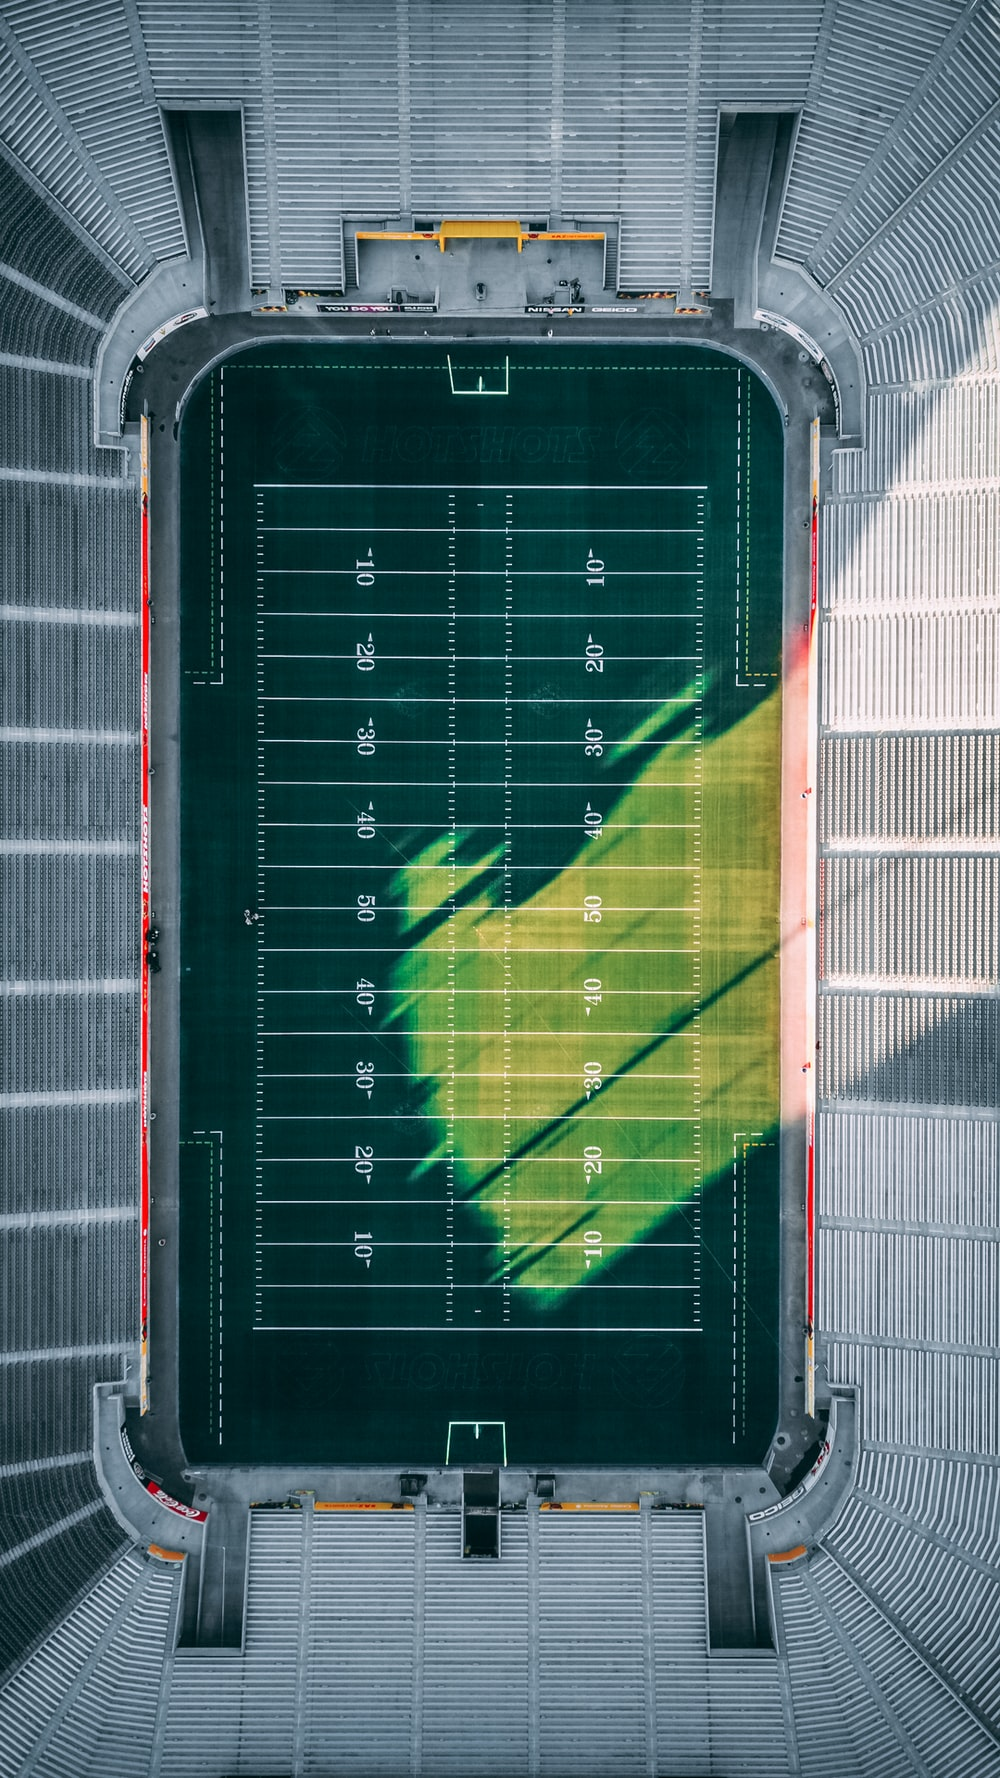 aerial photo of football field during daytime